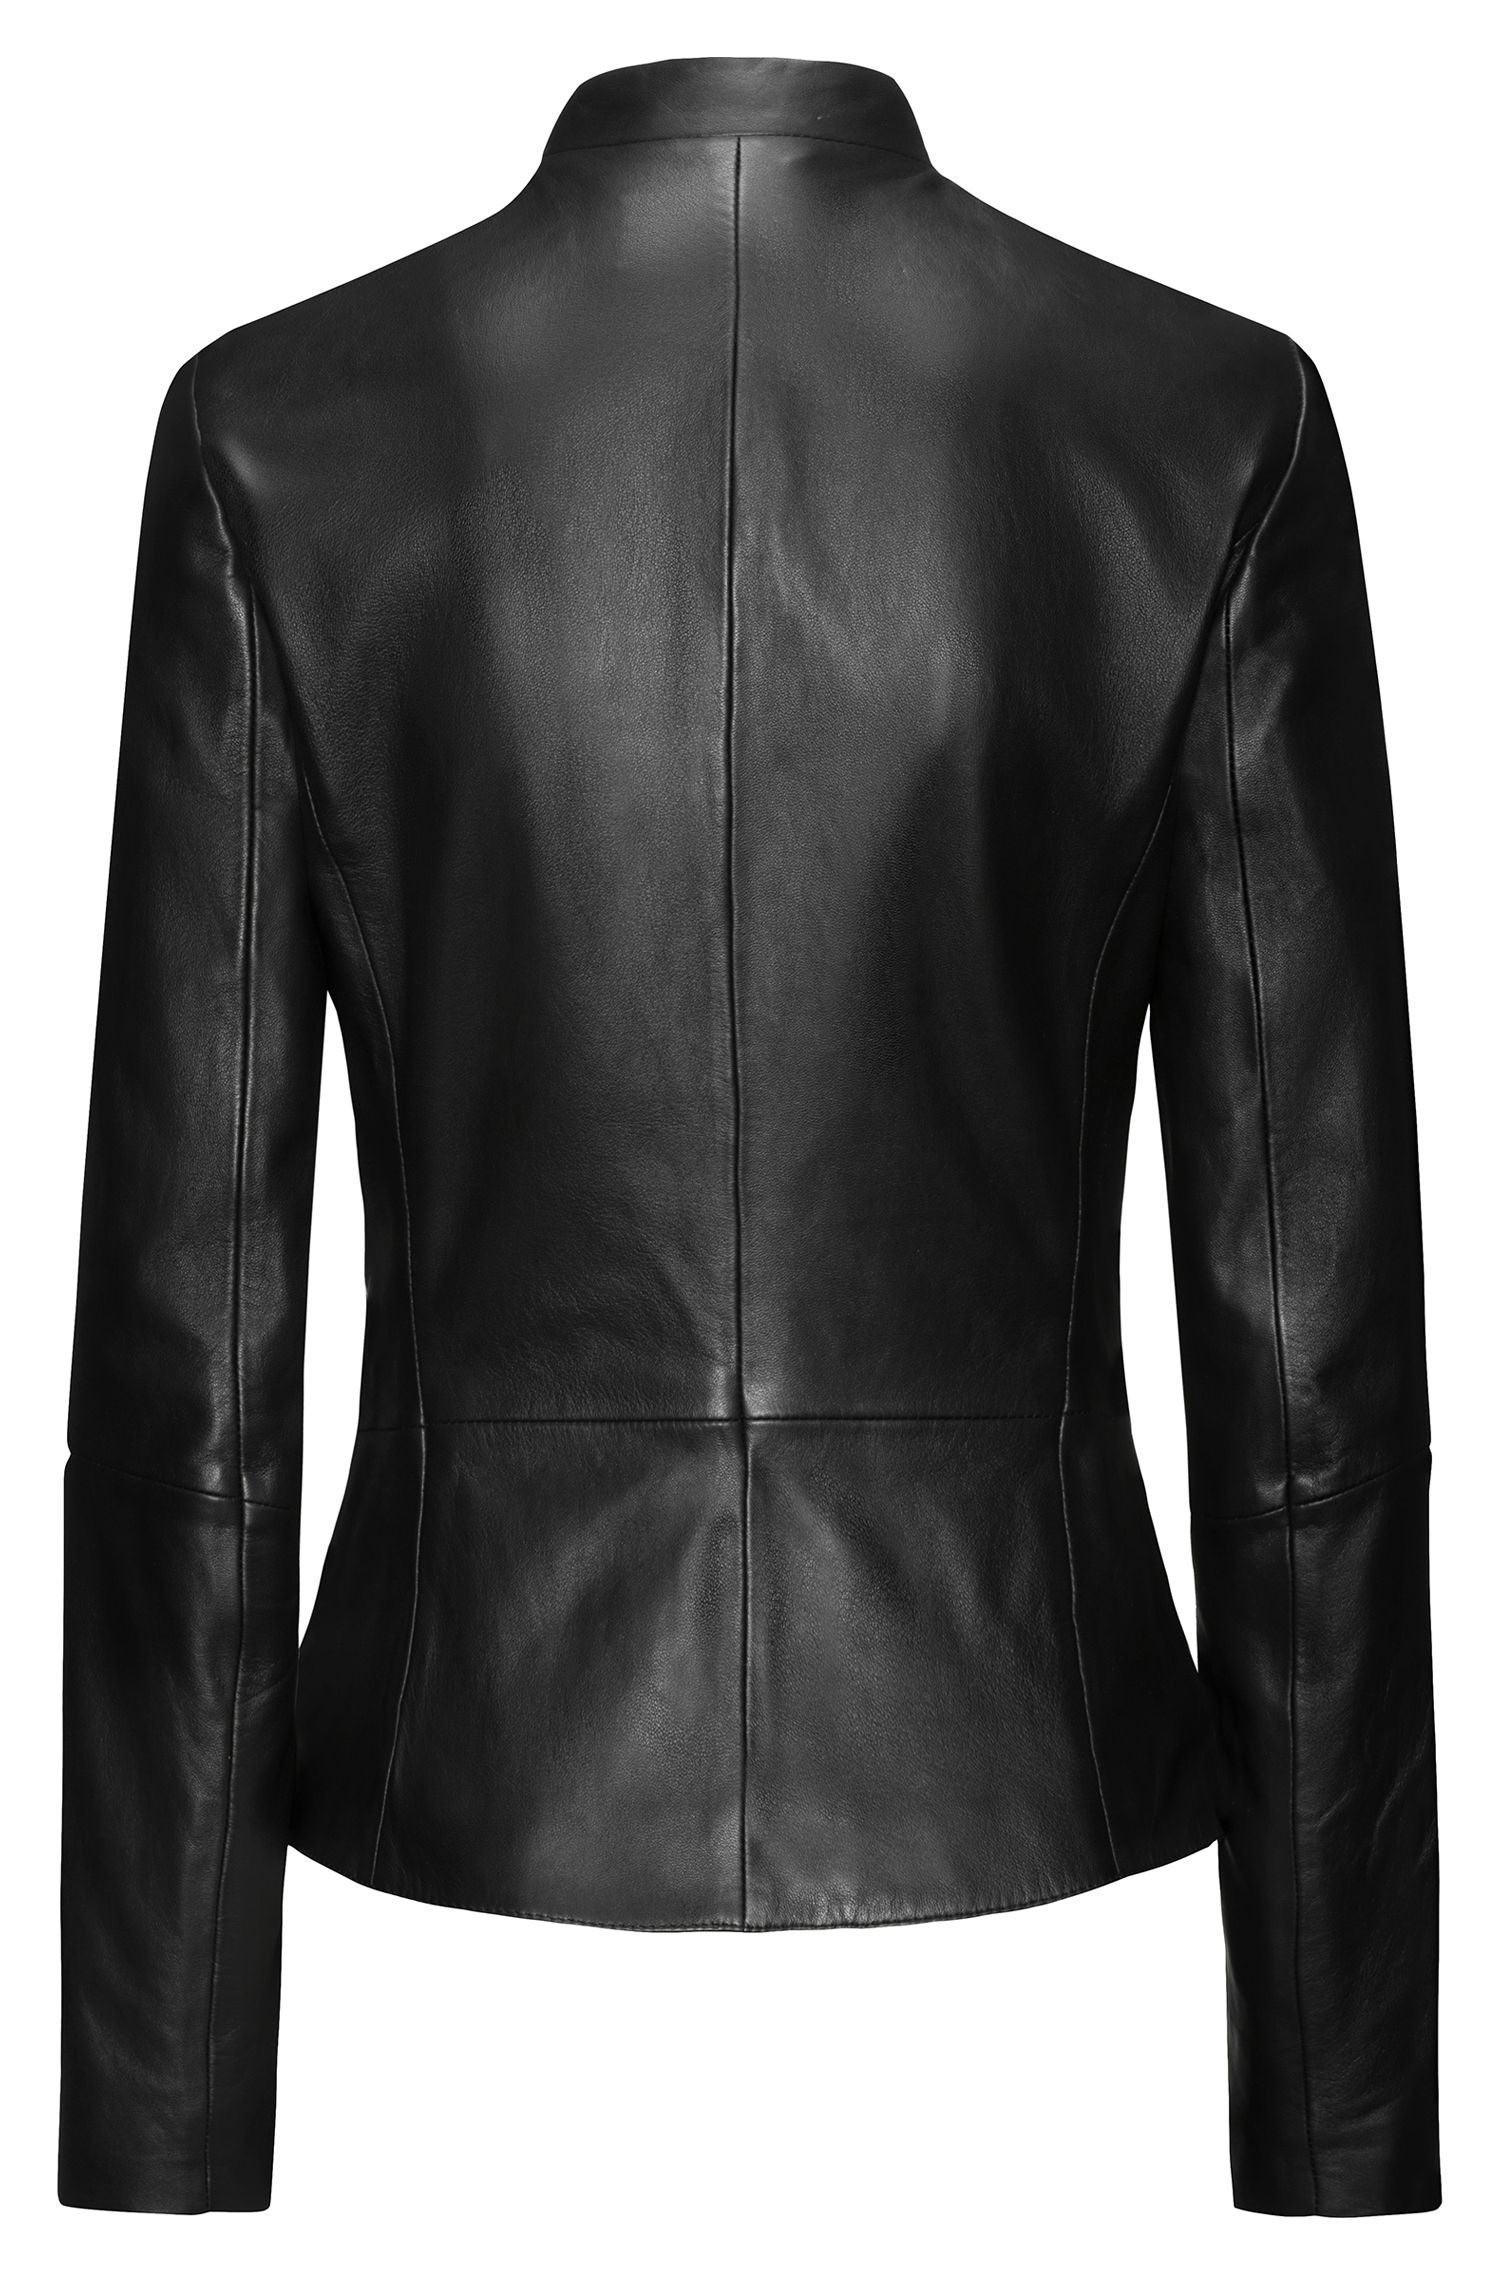 Regular-fit leather jacket with stand collar